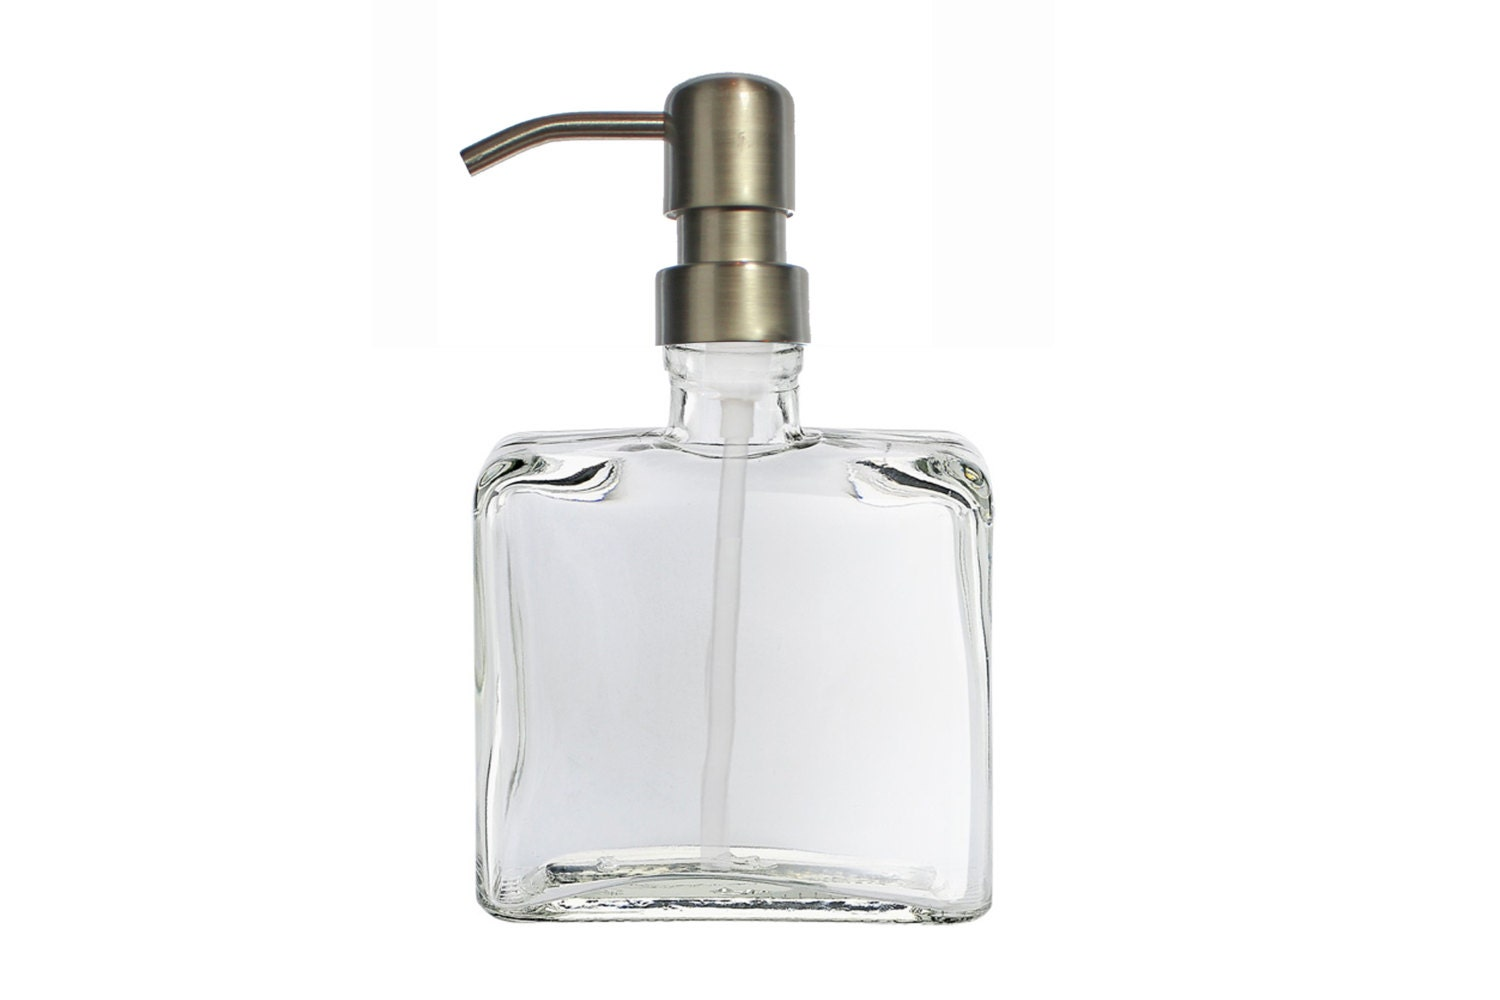 Brushed Nickel Soap Dispenser Pump : Glass Soap Dispenser with Metal Pump square by SouthernHomeSupply